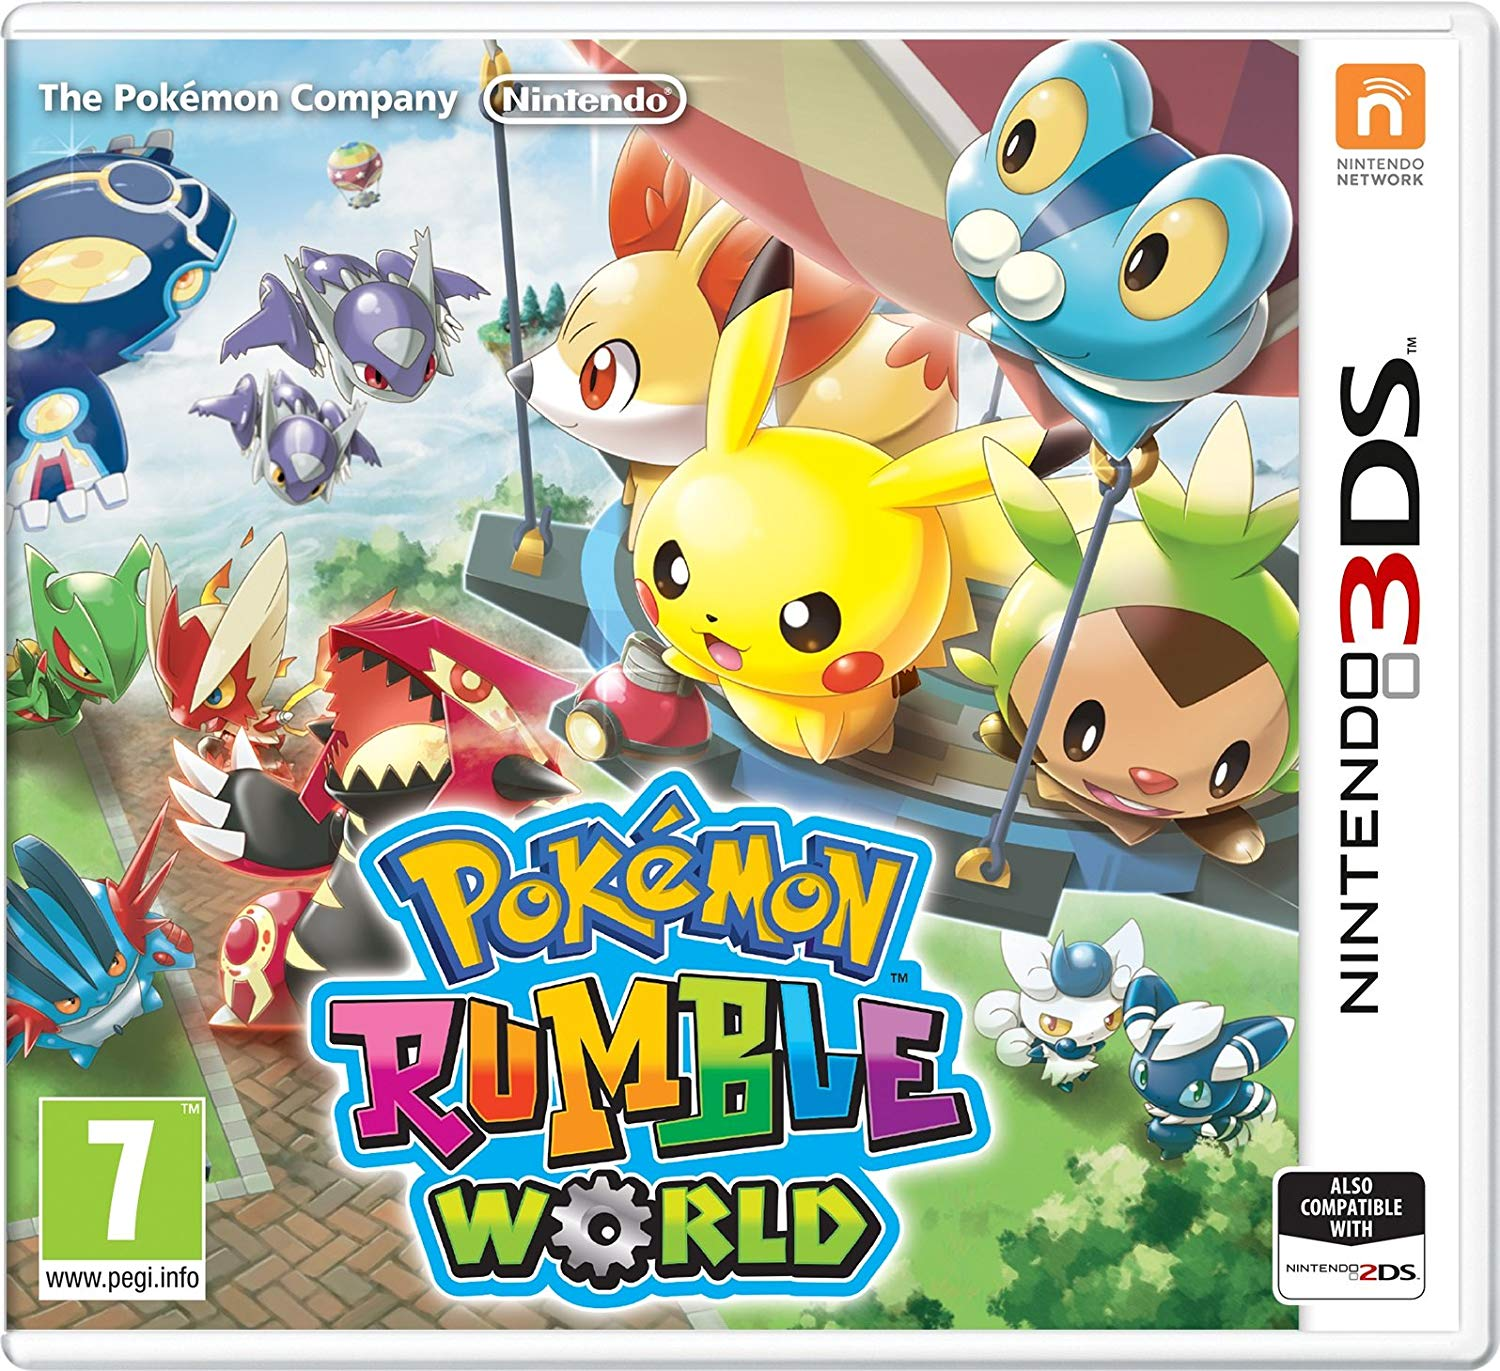 POKÉMON RUMBLE WORLD - 3DS